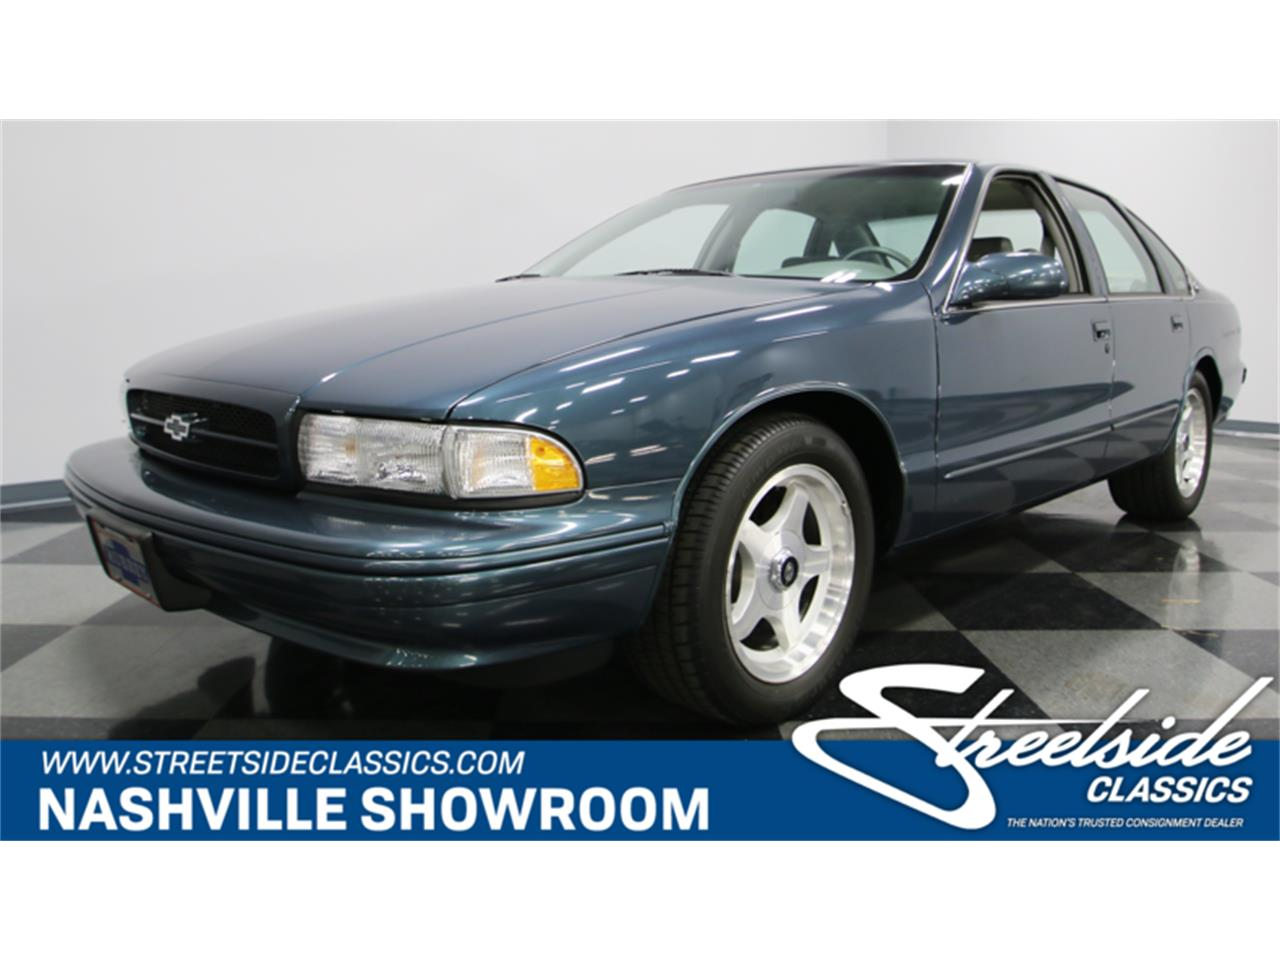 For Sale: 1996 Chevrolet Impala SS in Lavergne, Tennessee